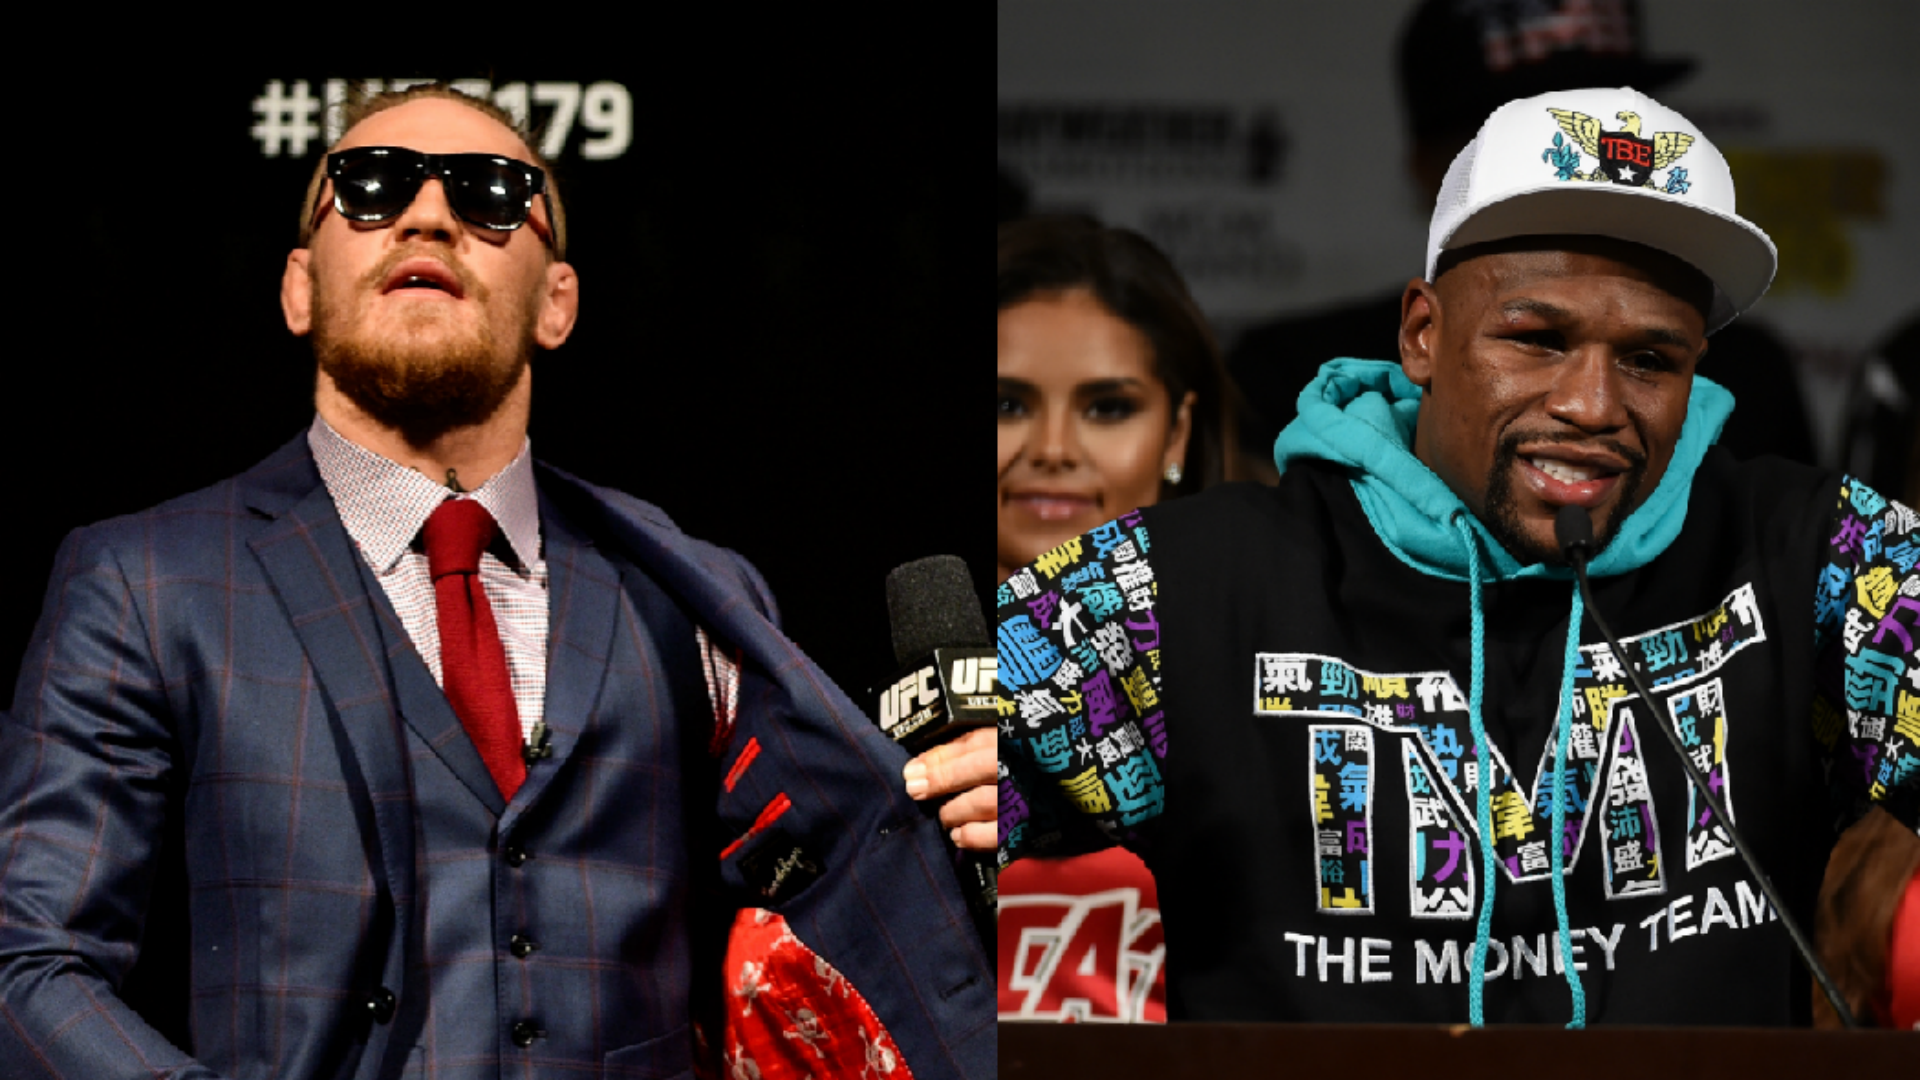 McGregor to begin media tour July 11 in LA